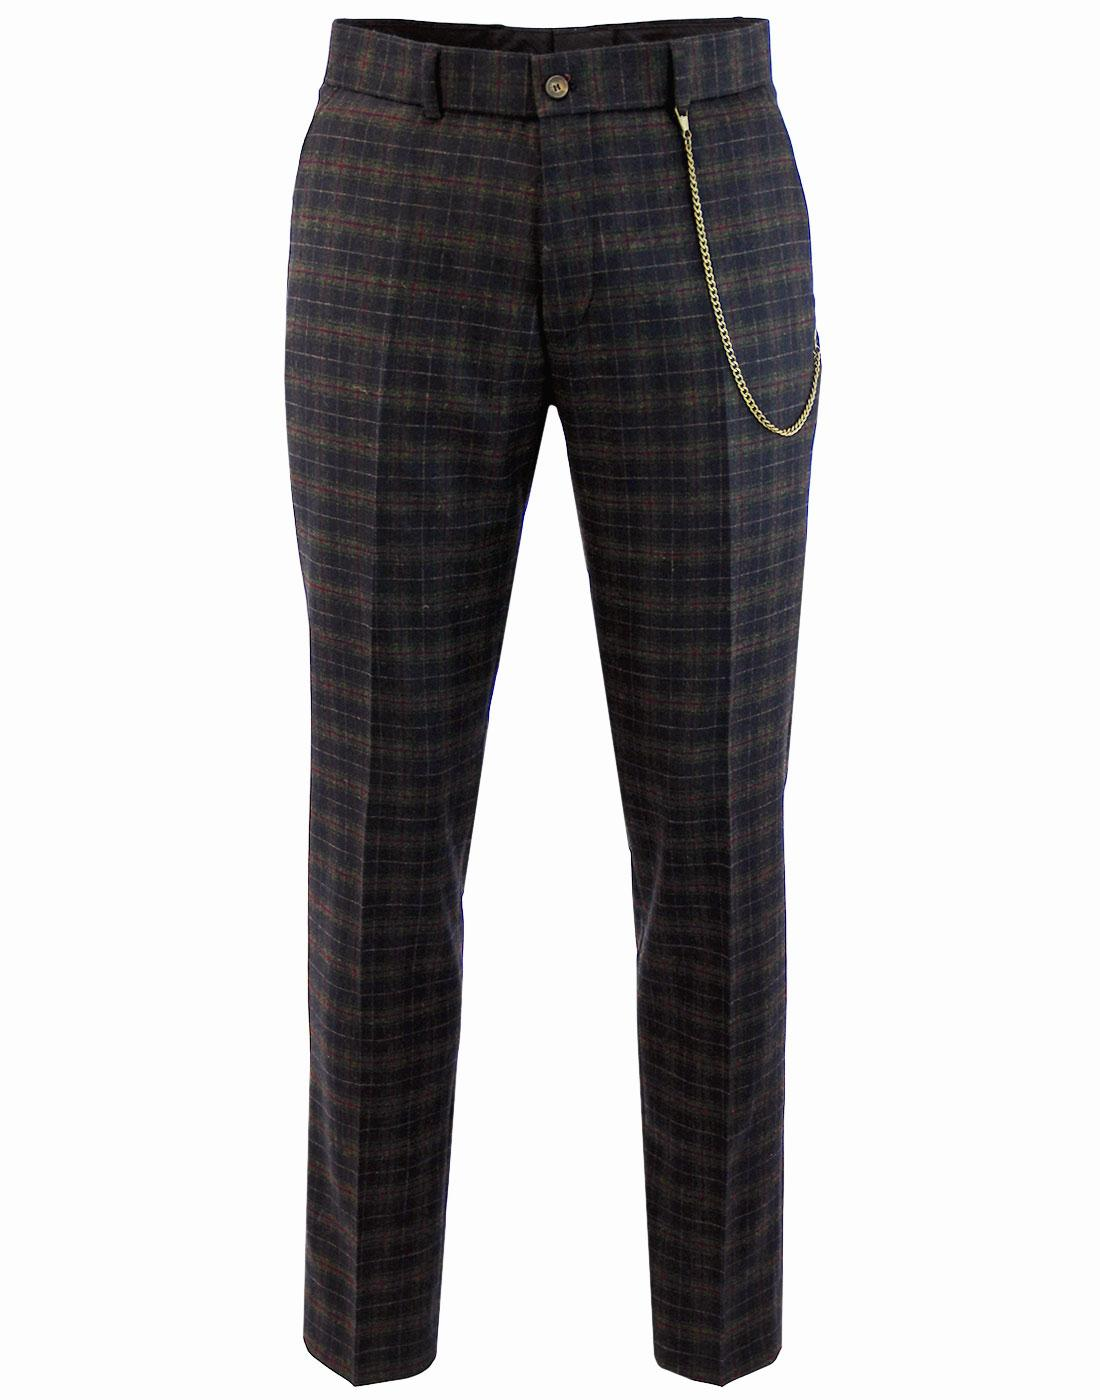 Towergate GIBSON LONDON Mod Tartan Suit Trousers